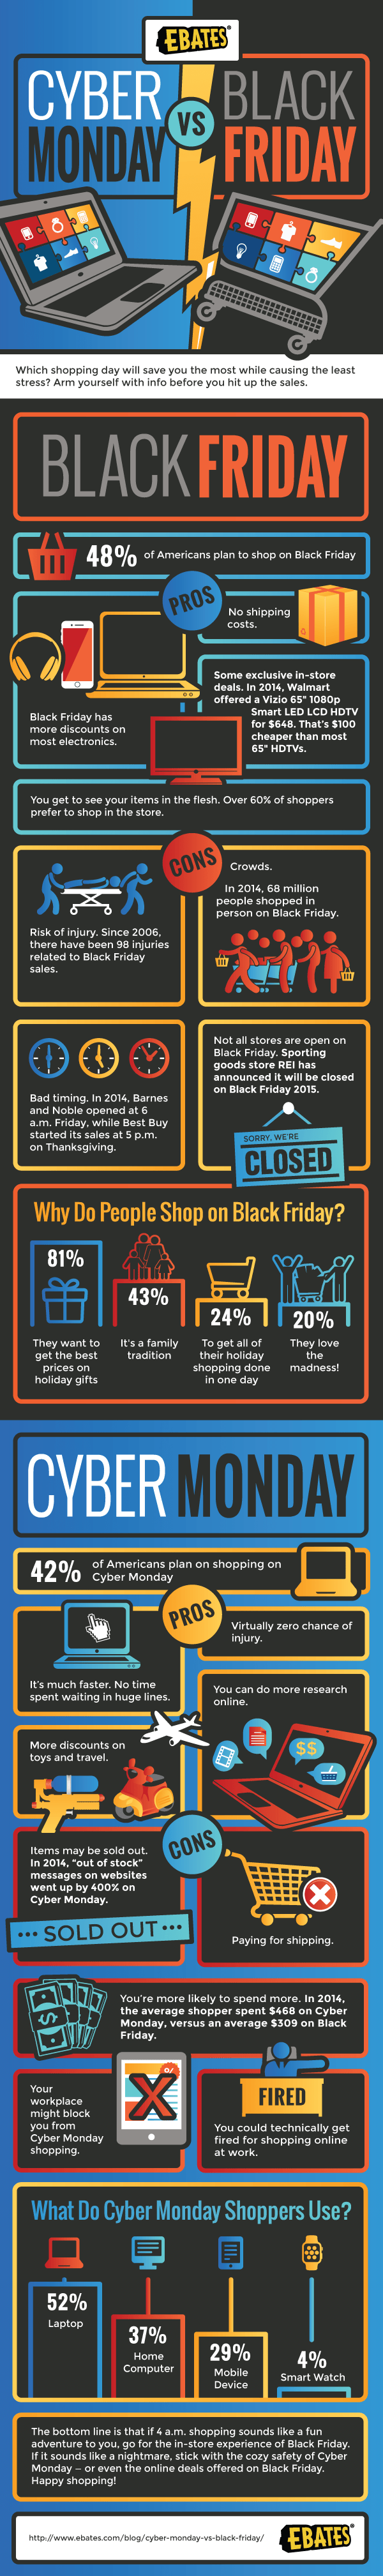 Cyber Monday vs Black Friday - Ebates